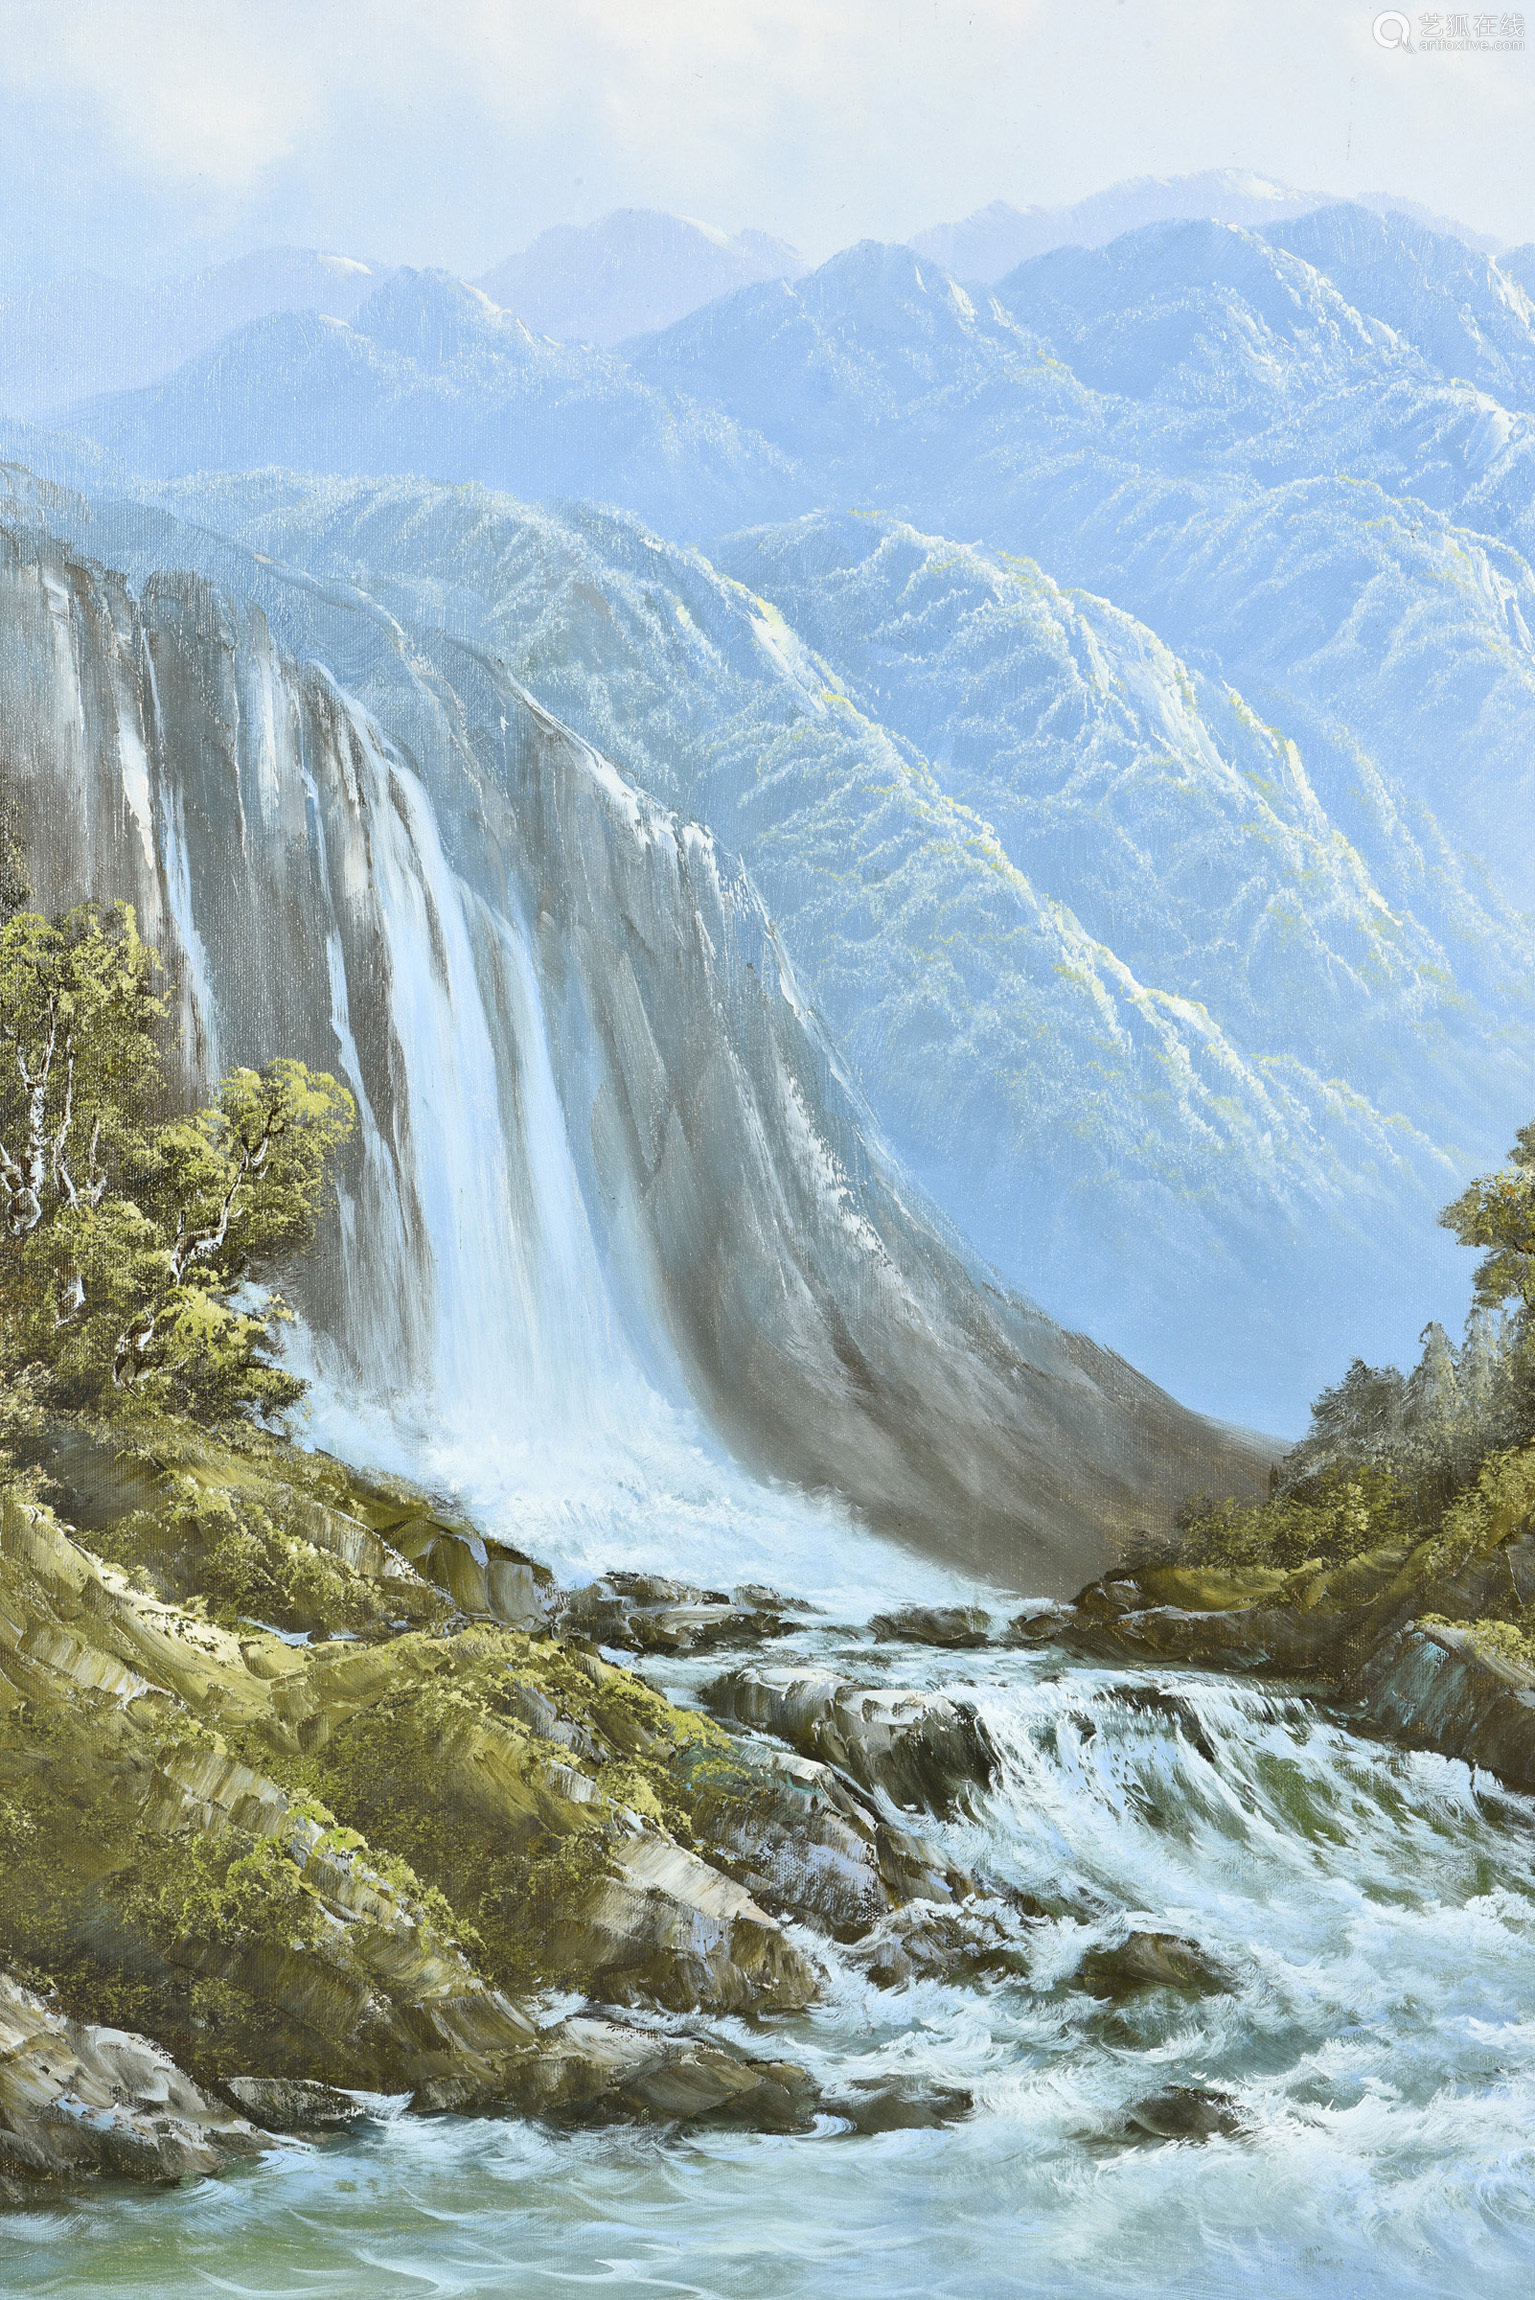 R. BOREN: FRAMED OIL PAINTING ON CANVASS 'WATERFALL'